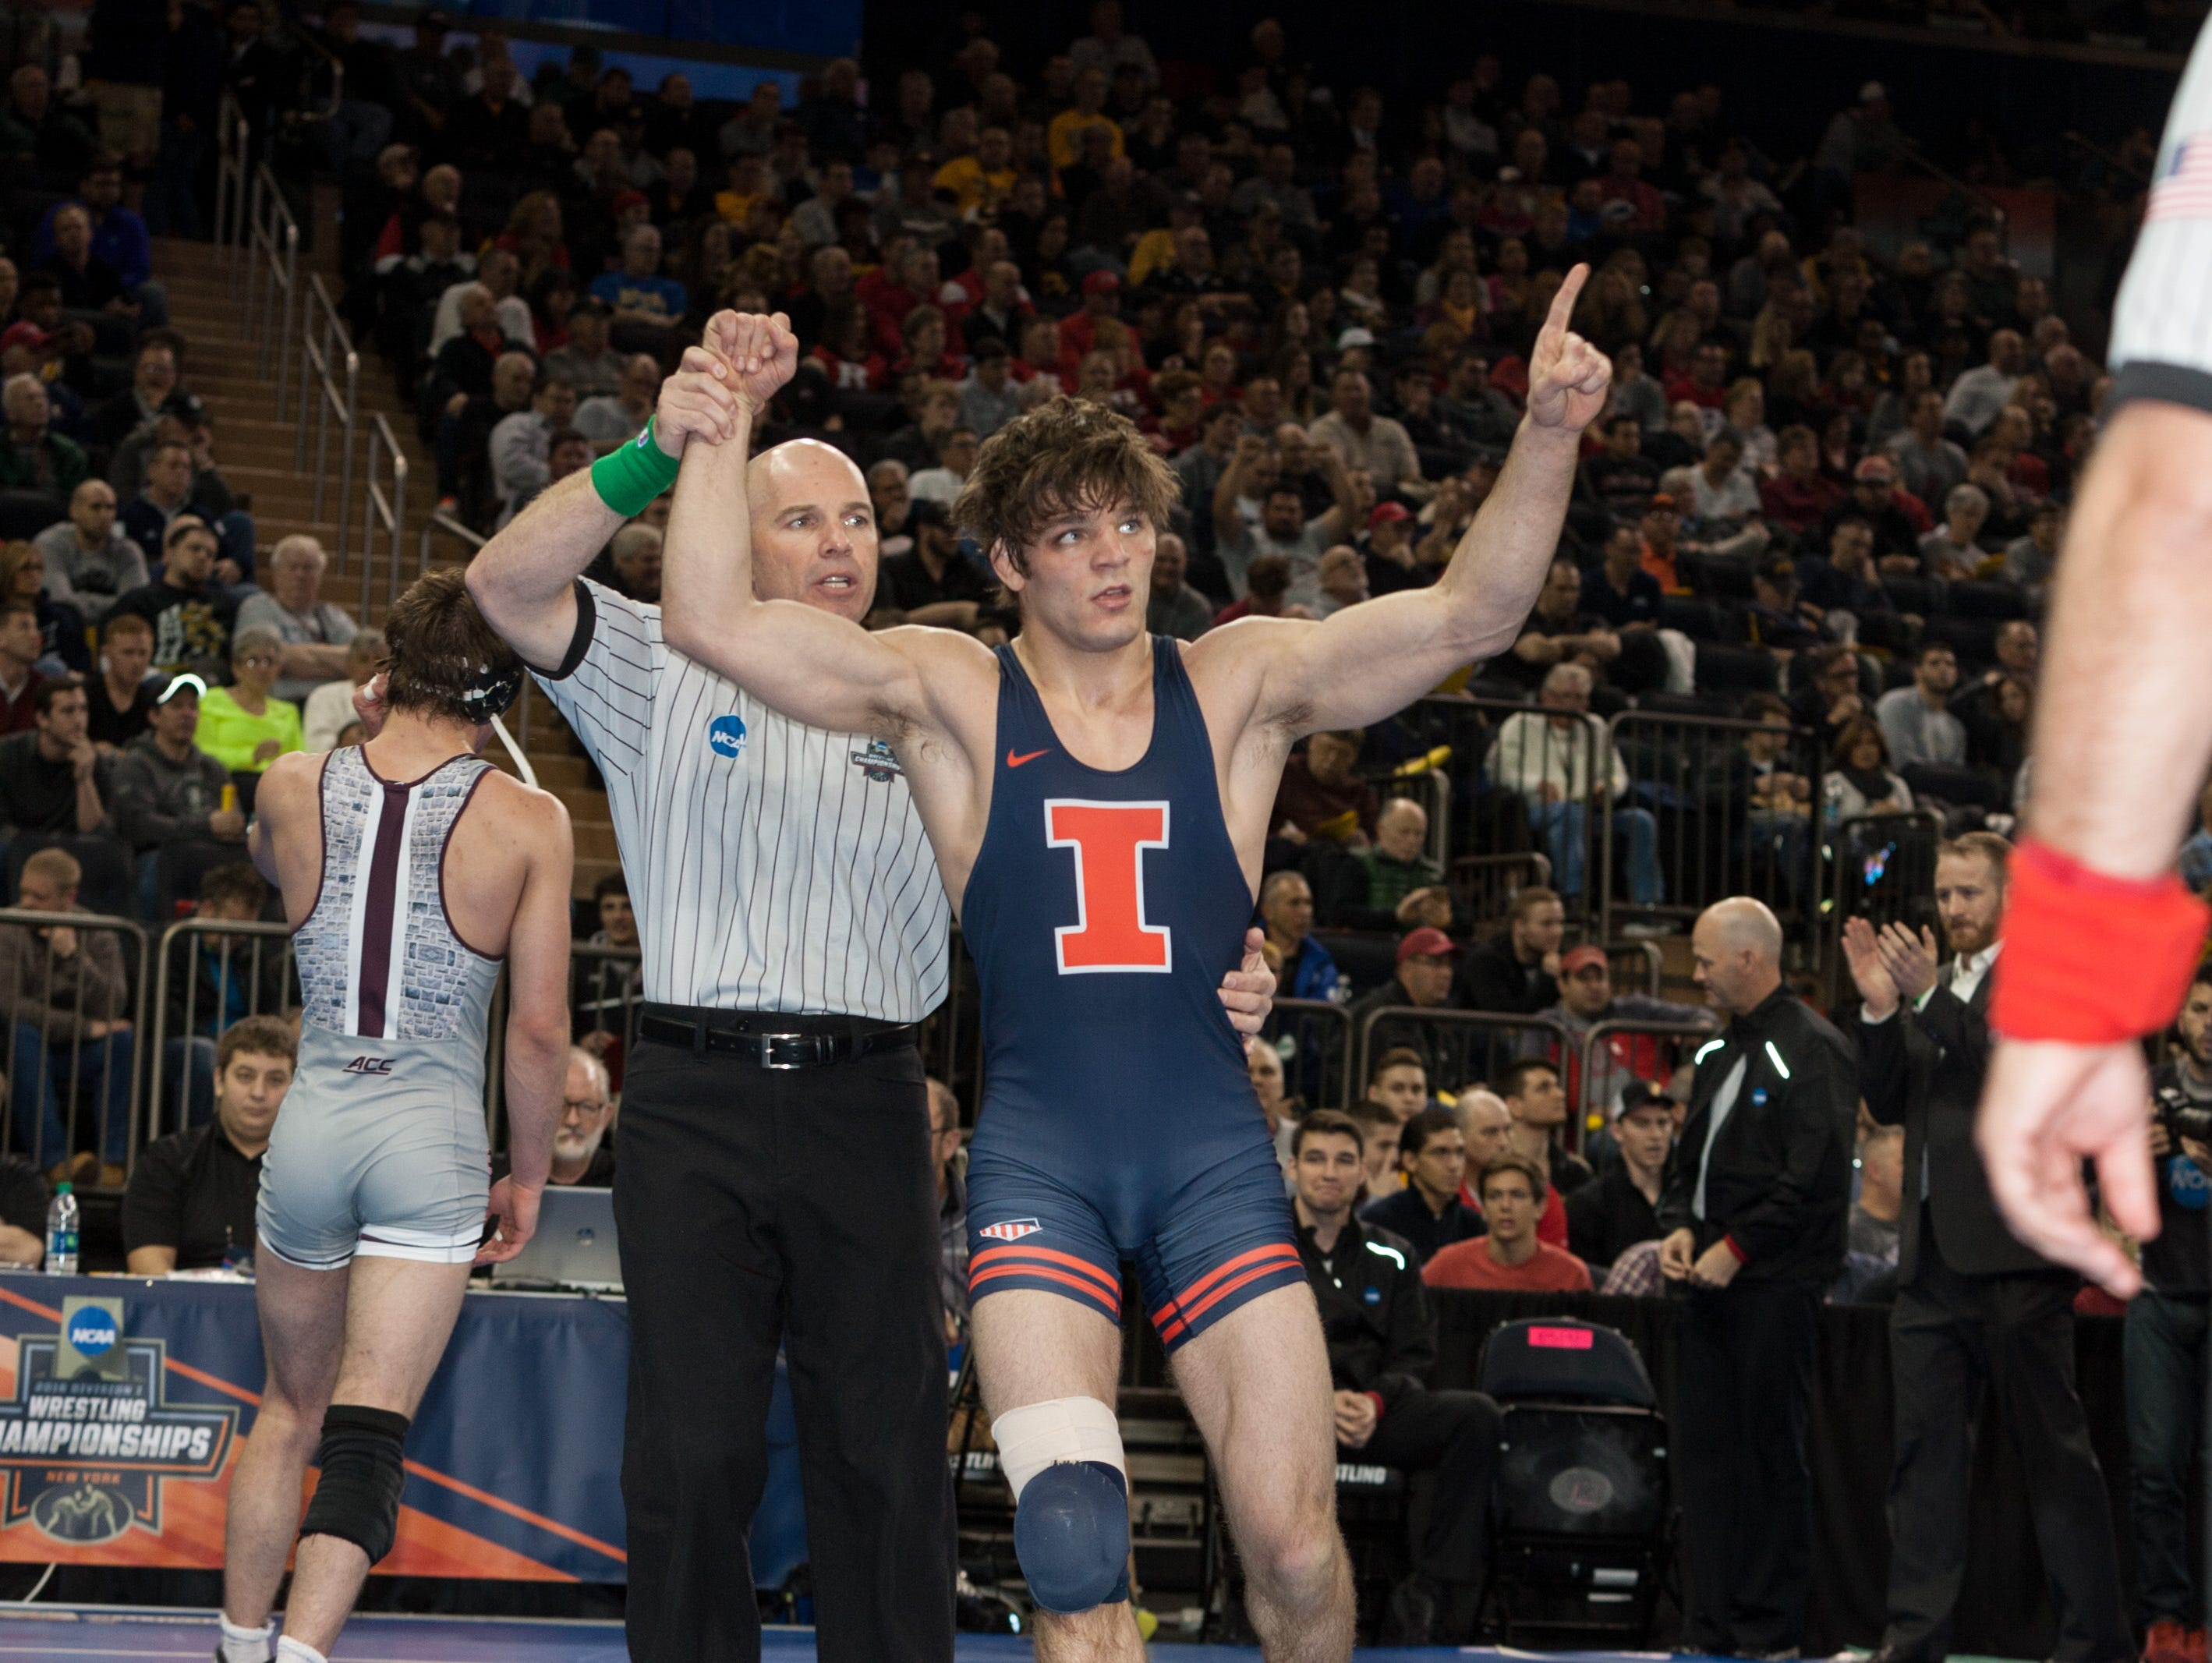 Illinois senior Steven Rodrigues reacts after winning the fifth place match at 165 pounds against Virginia Tech's David McFadden with an 8-5 decision at the NCAA Division I Wrestling Championships at Madison Square Garden on Saturday.